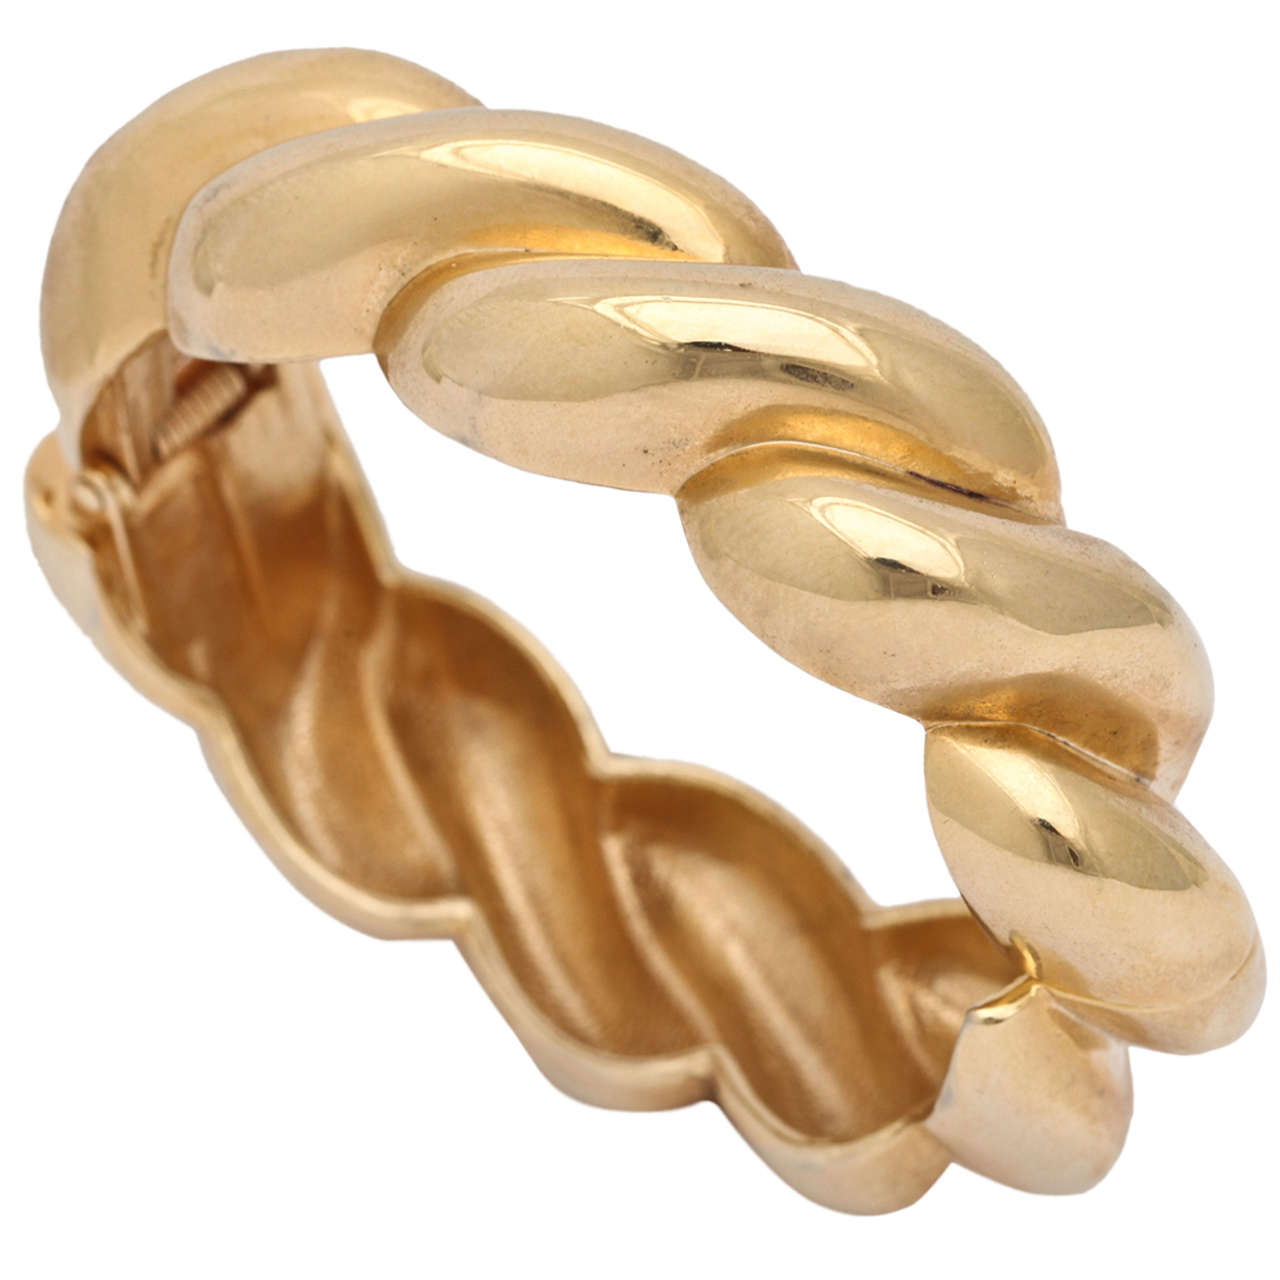 Goldtone Rope style Clamp Bangle